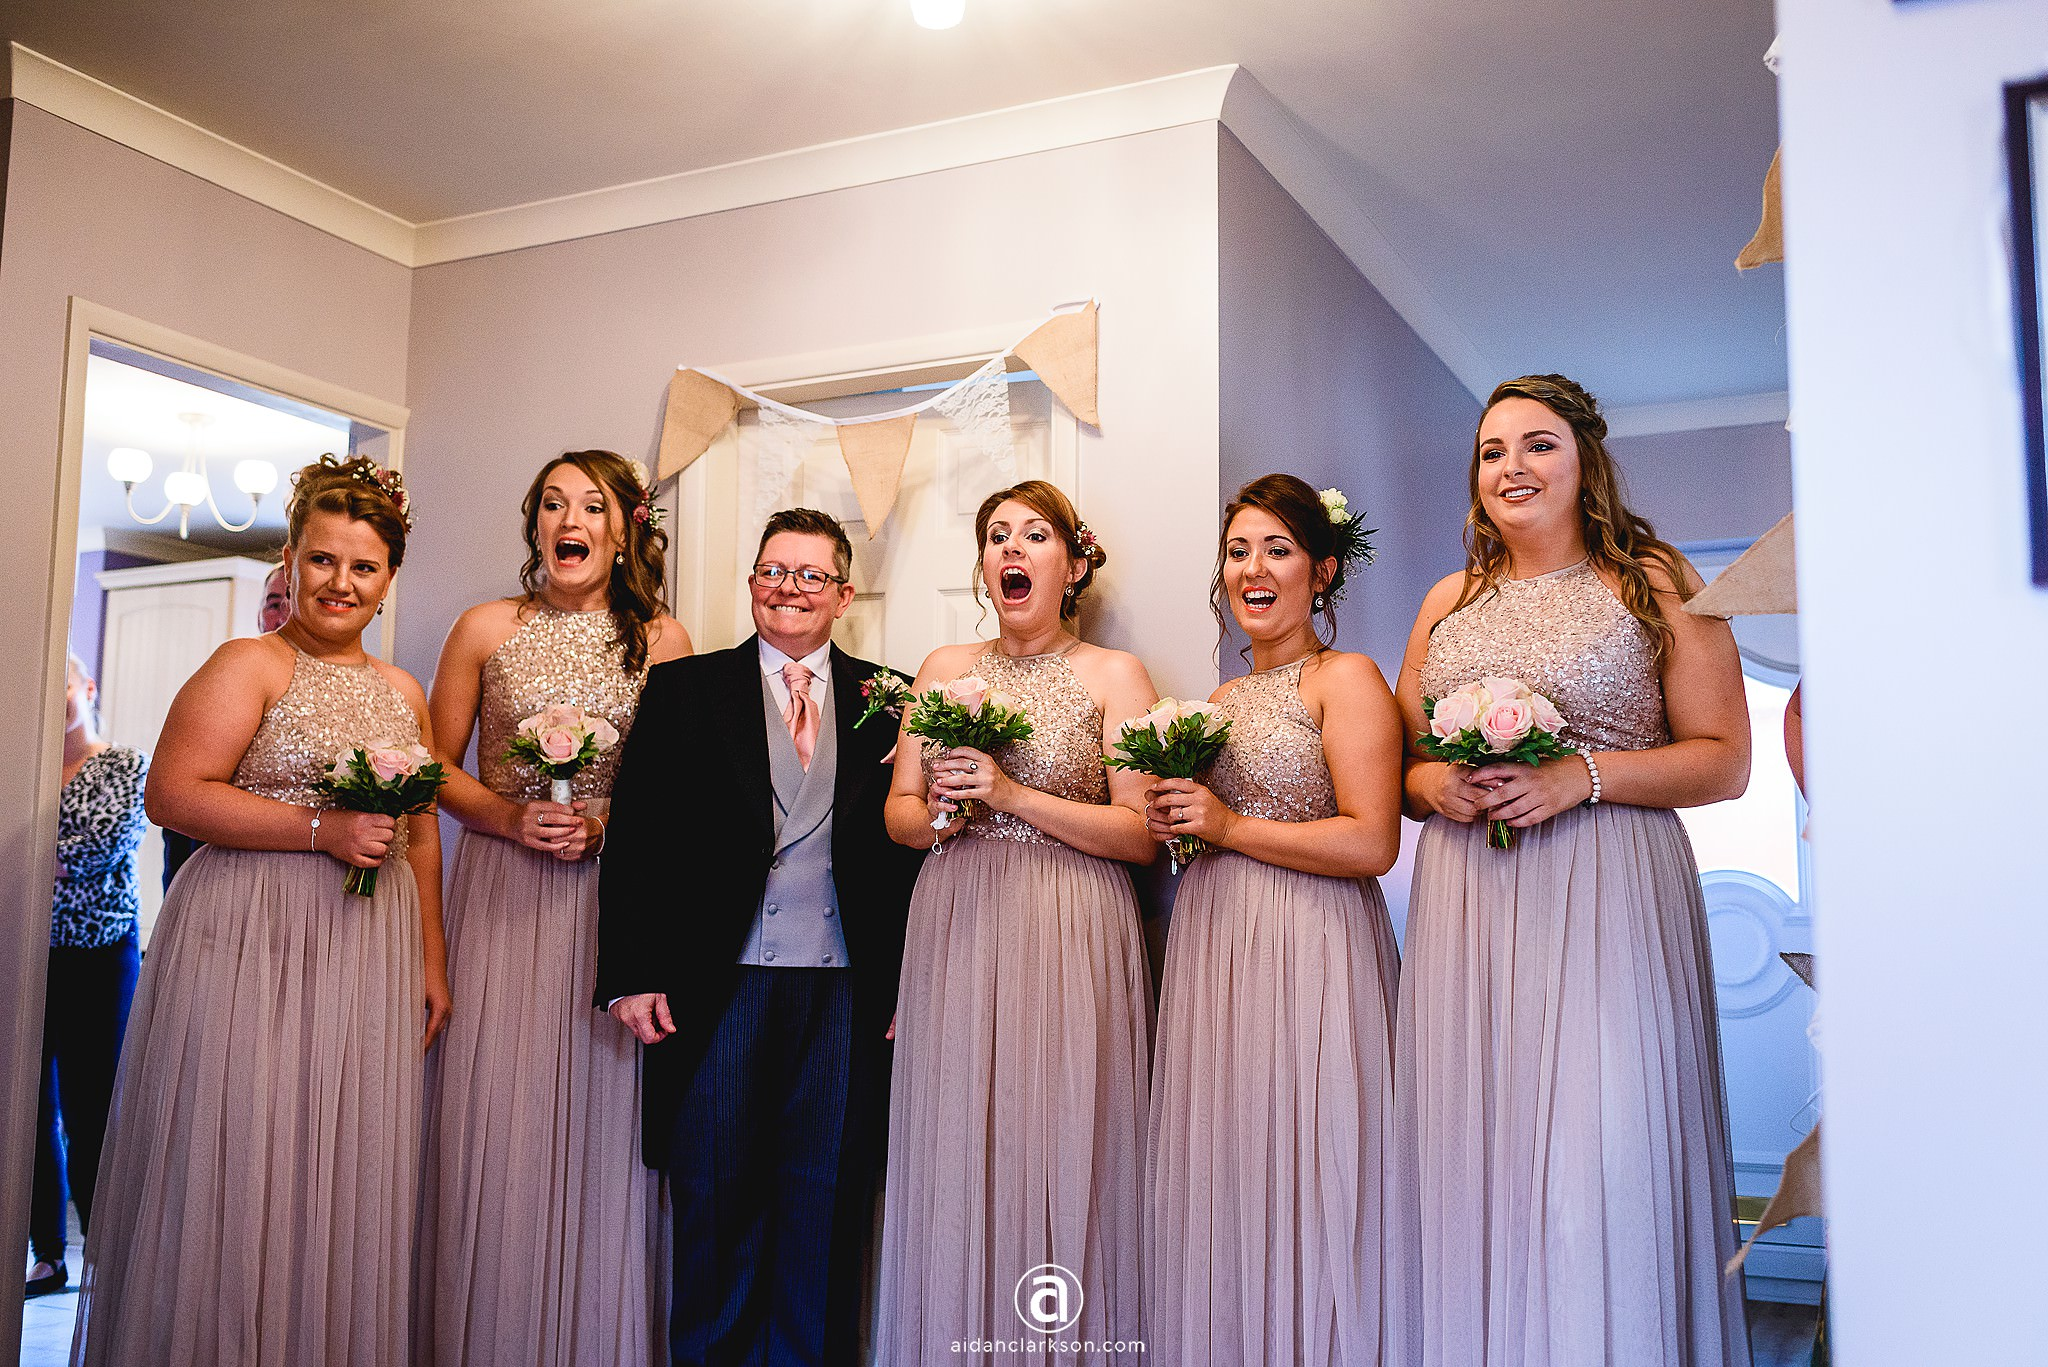 weddings at brackenborough hotel_0020